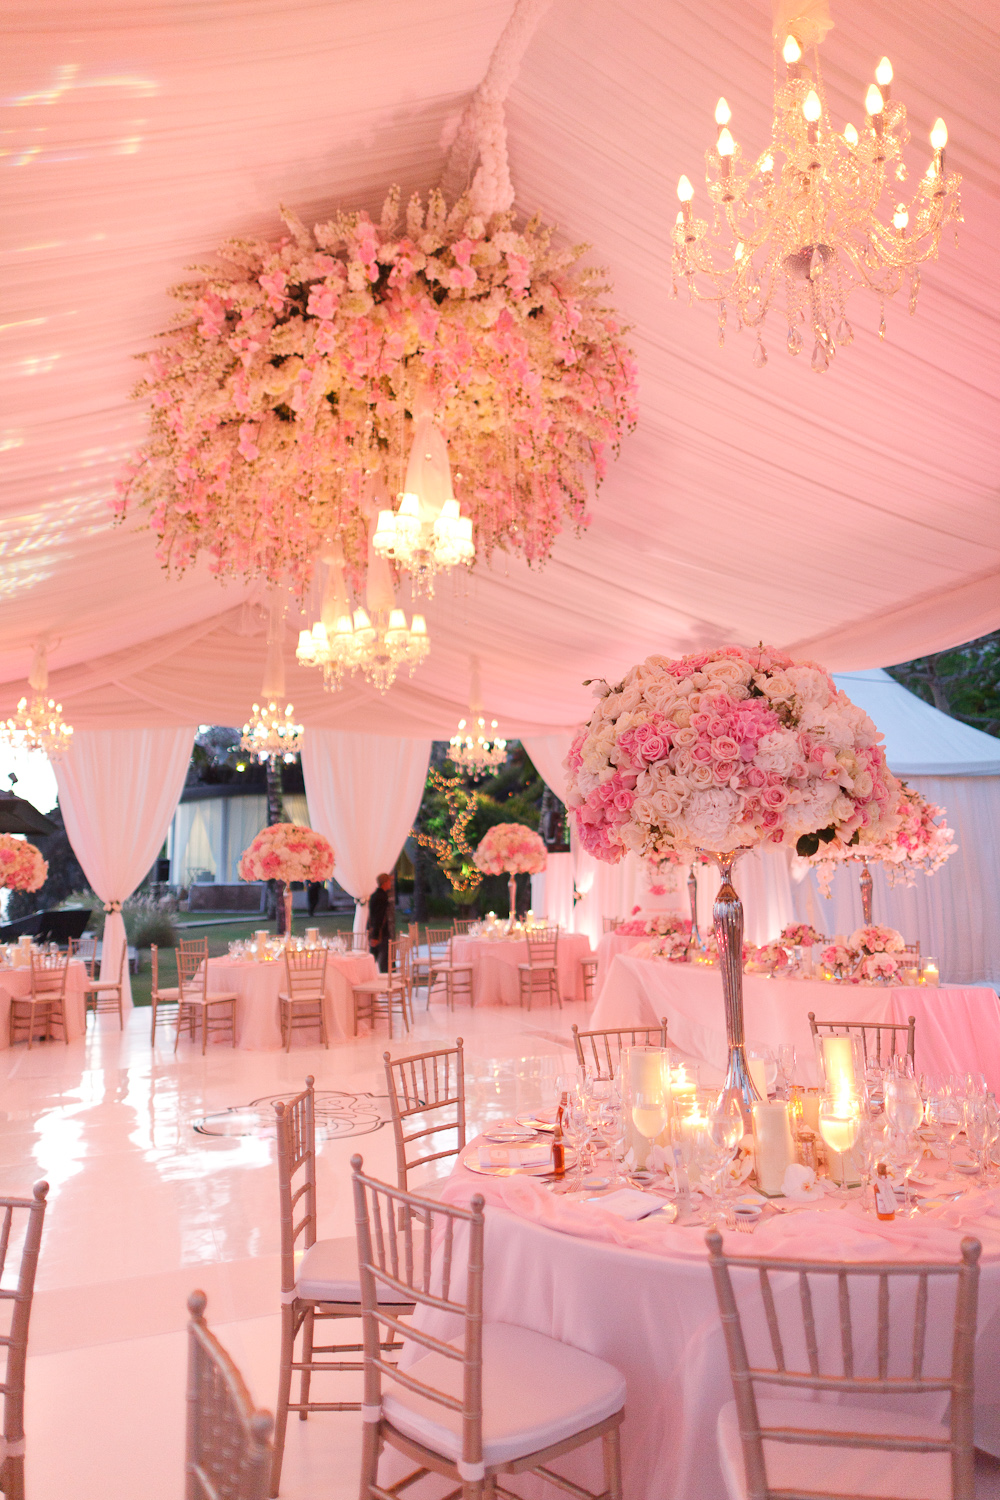 Pretty in pink wedding with drapes and lighting